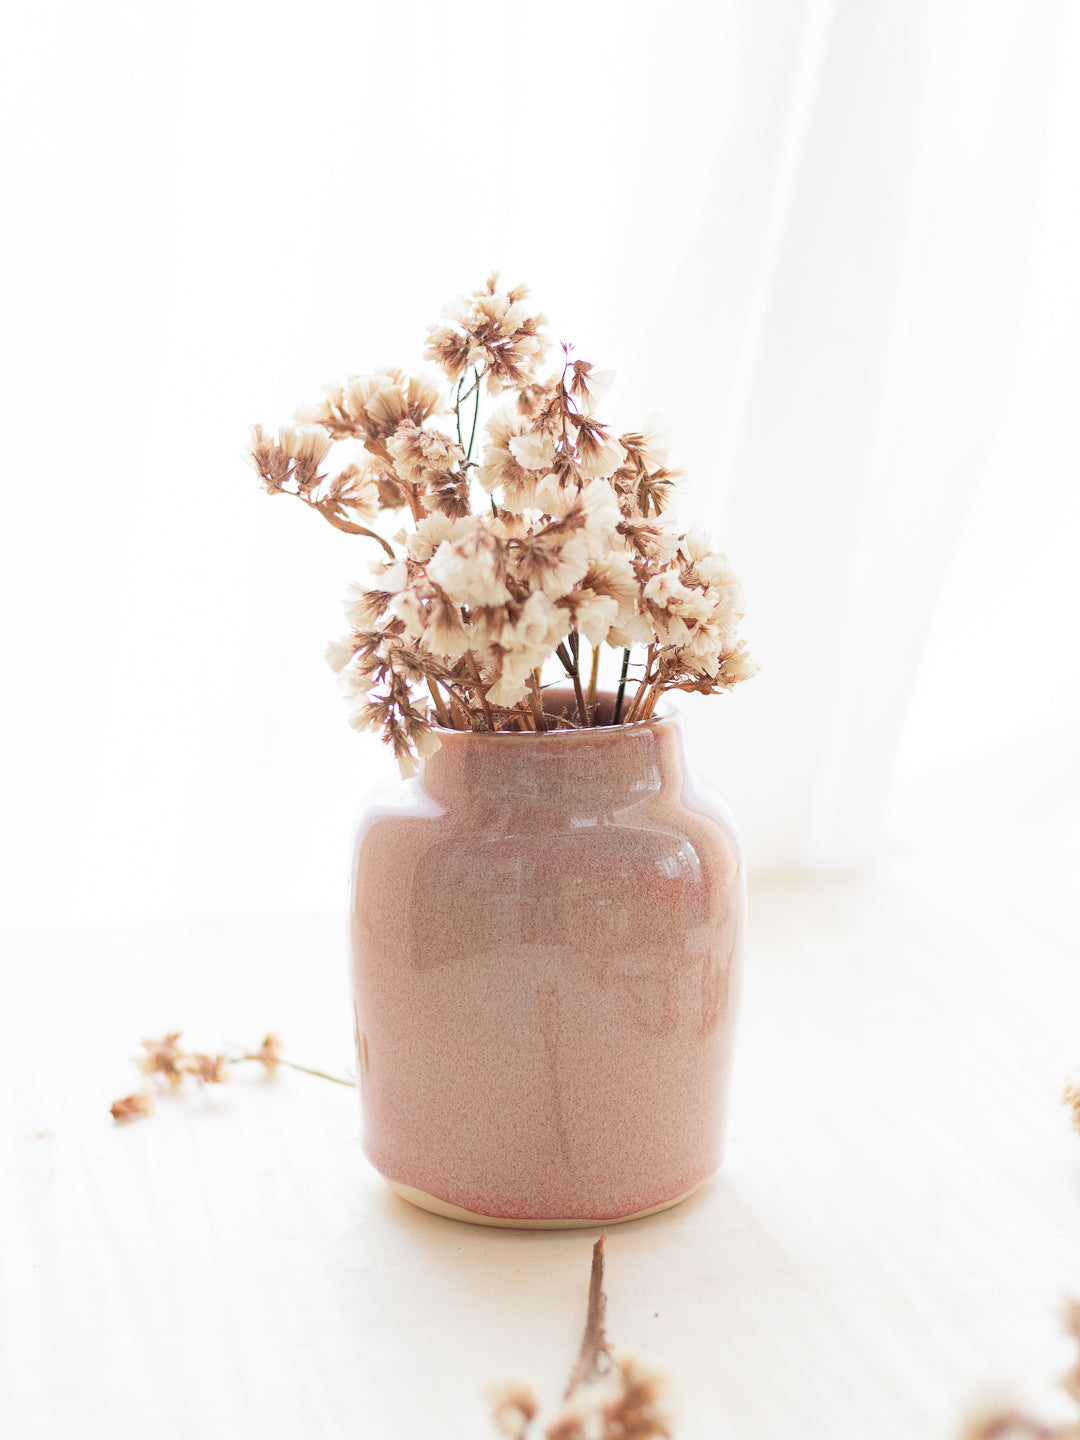 The Pink Stoic Vase